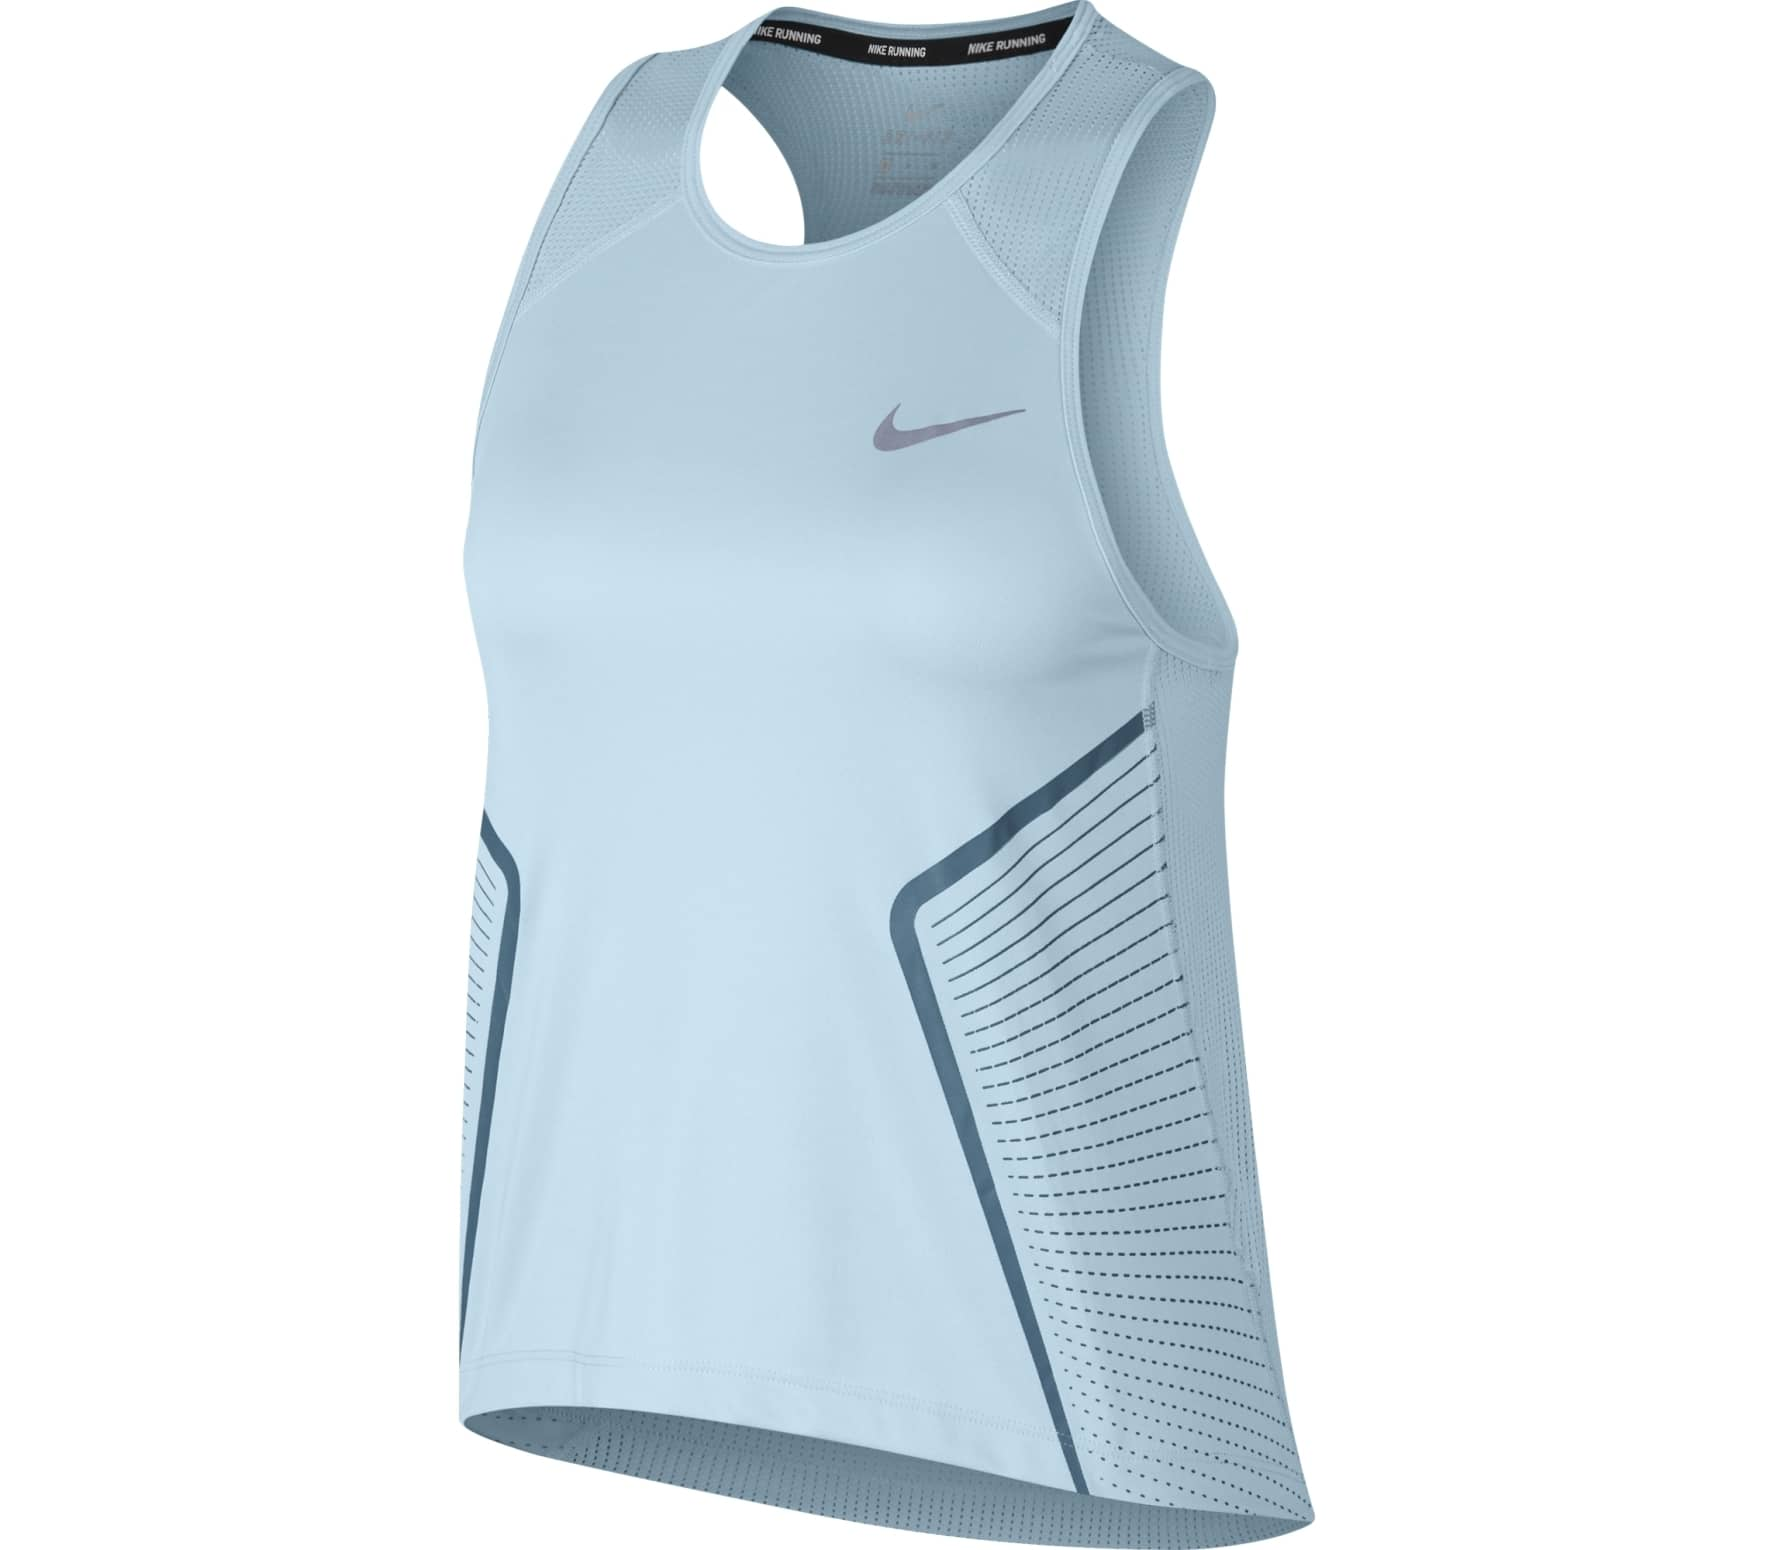 2ad7bc2a42621 Nike - Dry Miler women s running top (light blue) - buy it at the ...